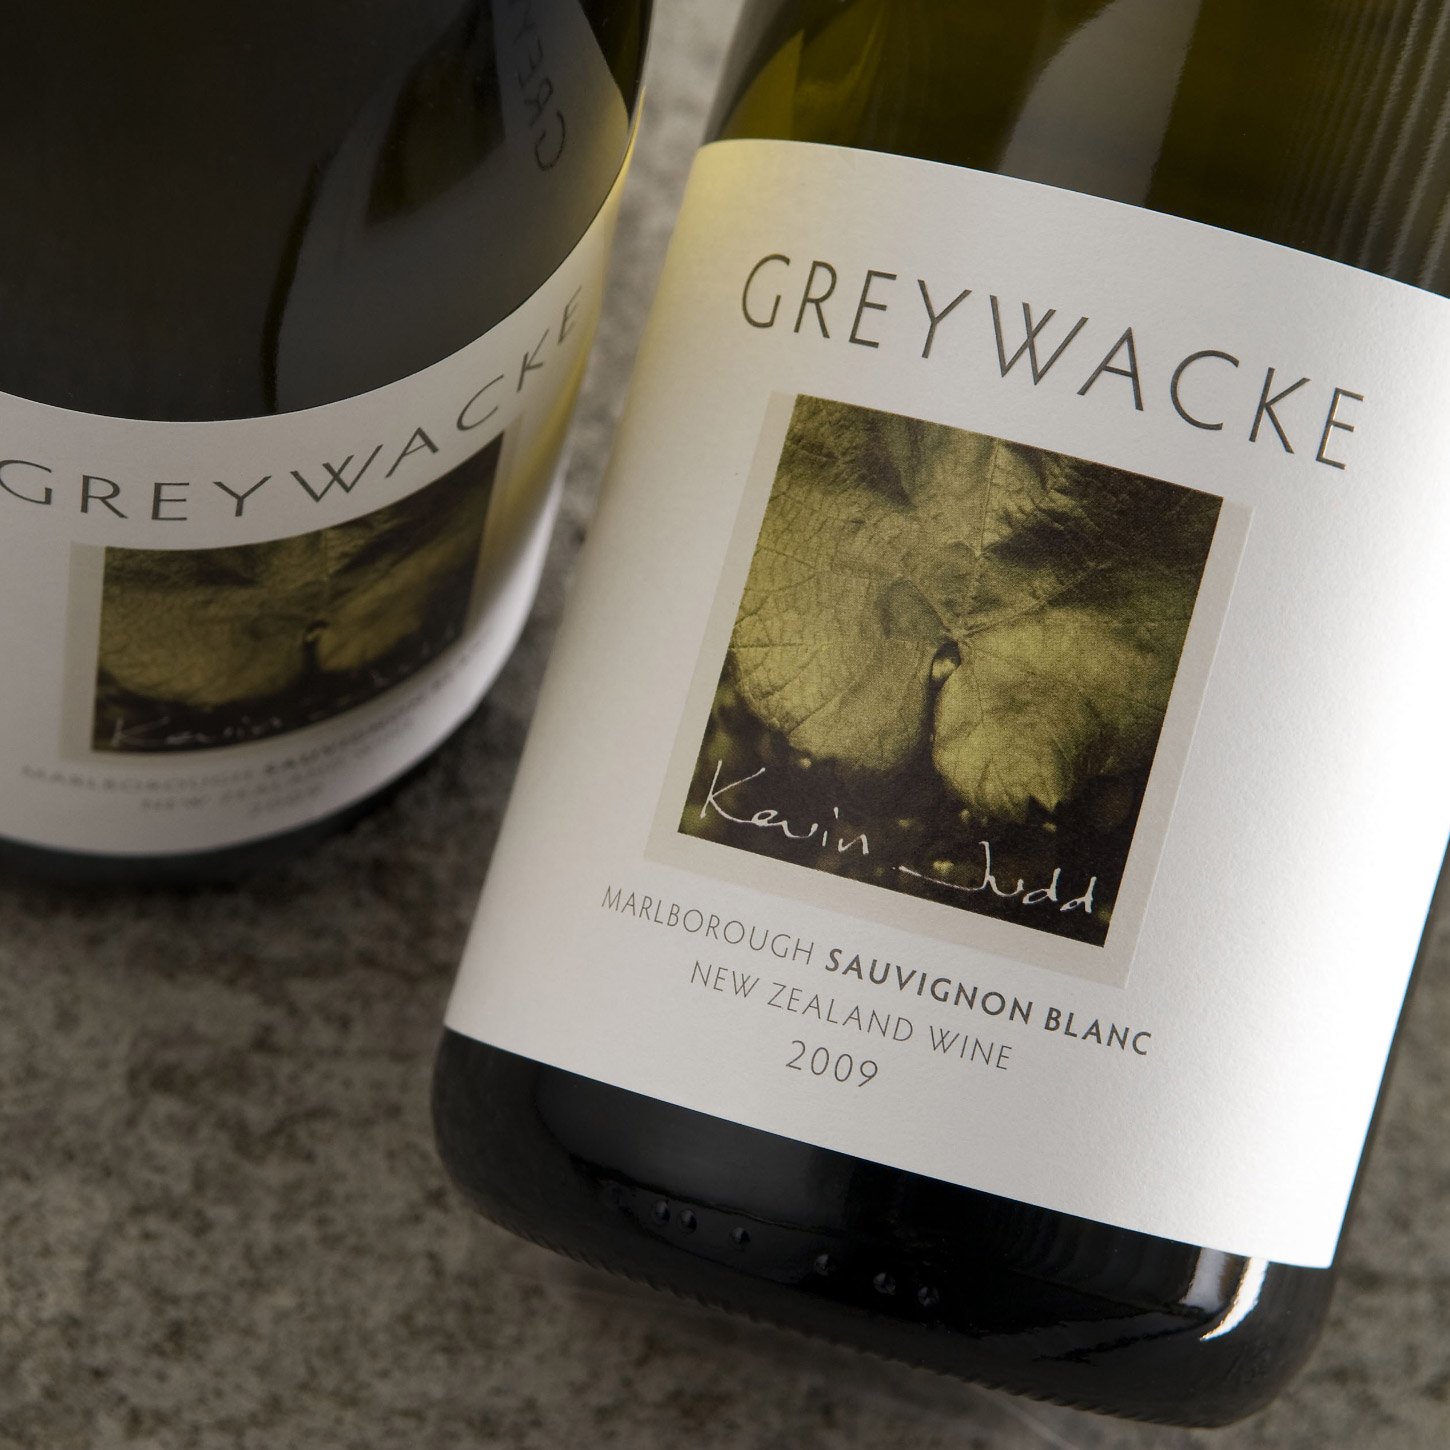 Glass of Greywacke Marlborough 2016 Sauvignon Blanc